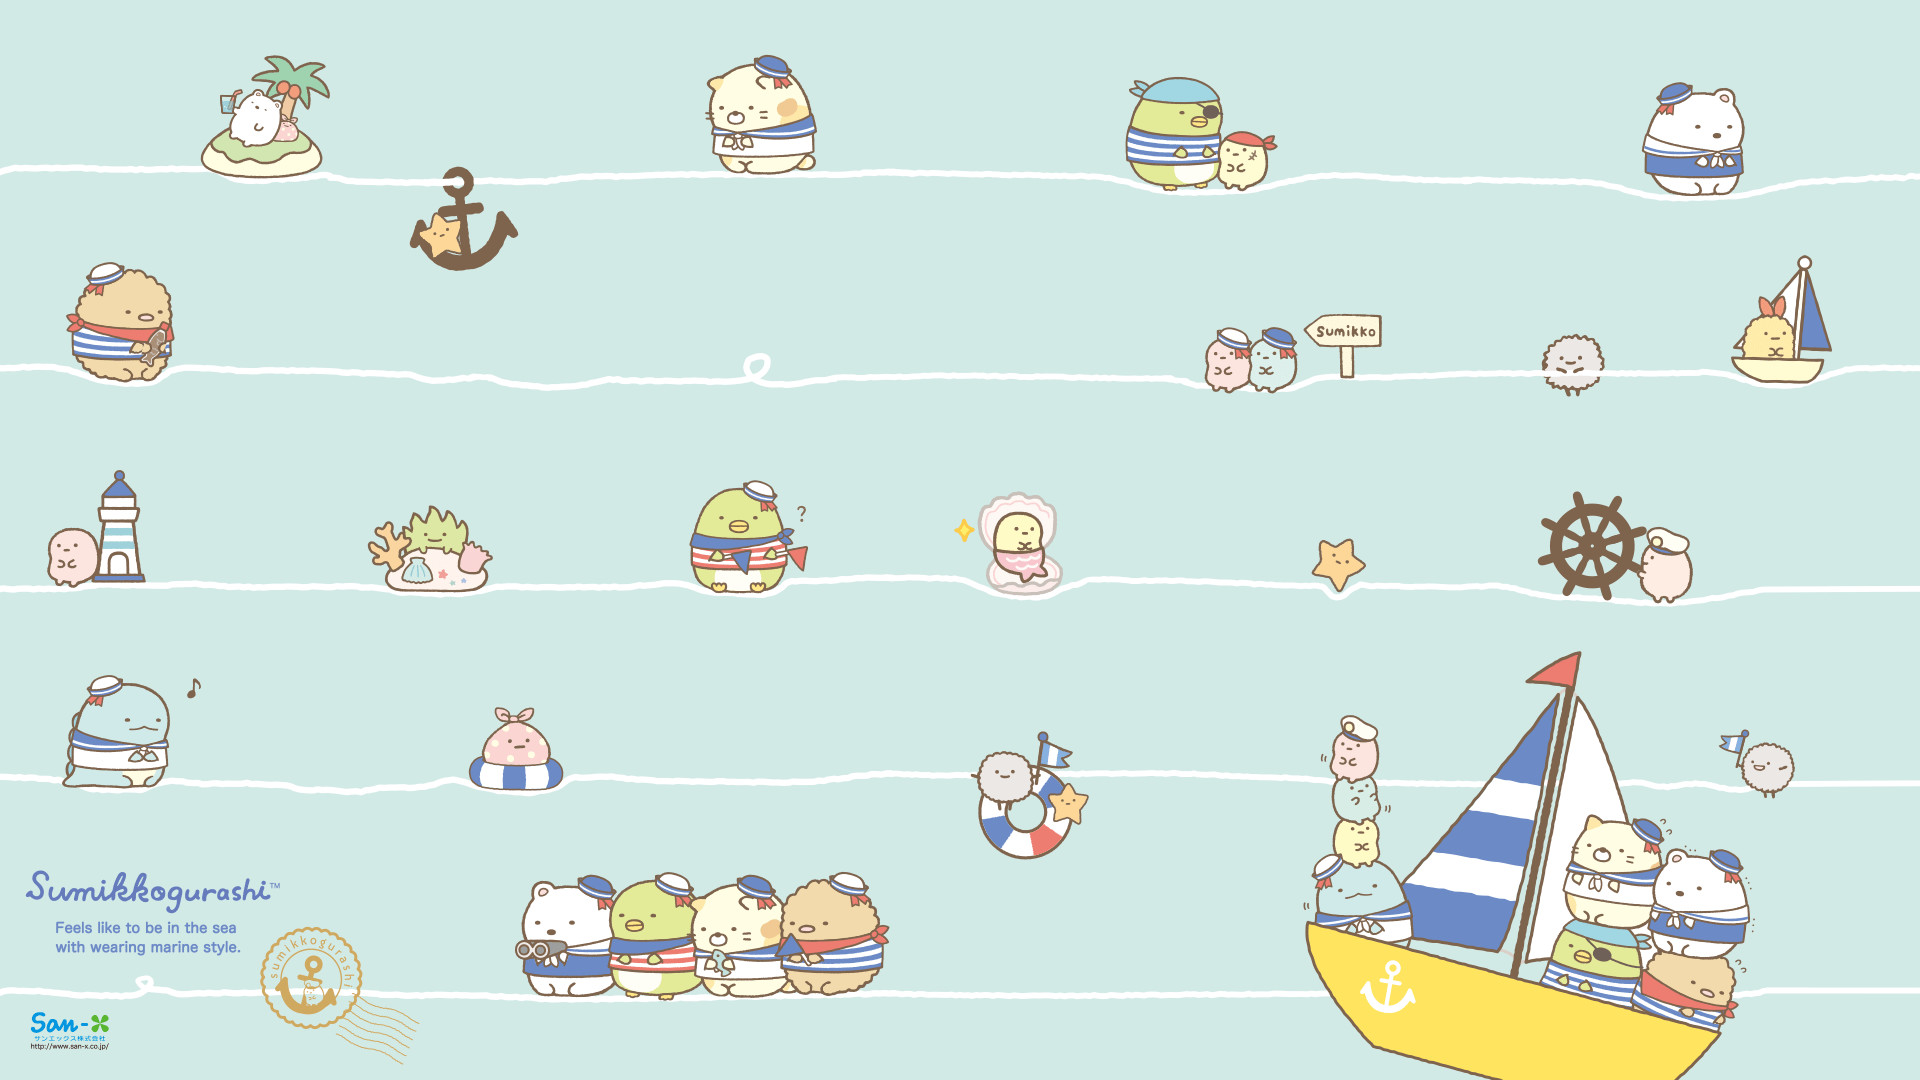 1920x1080 Sumikkogurashi Marine Series Wallpaper